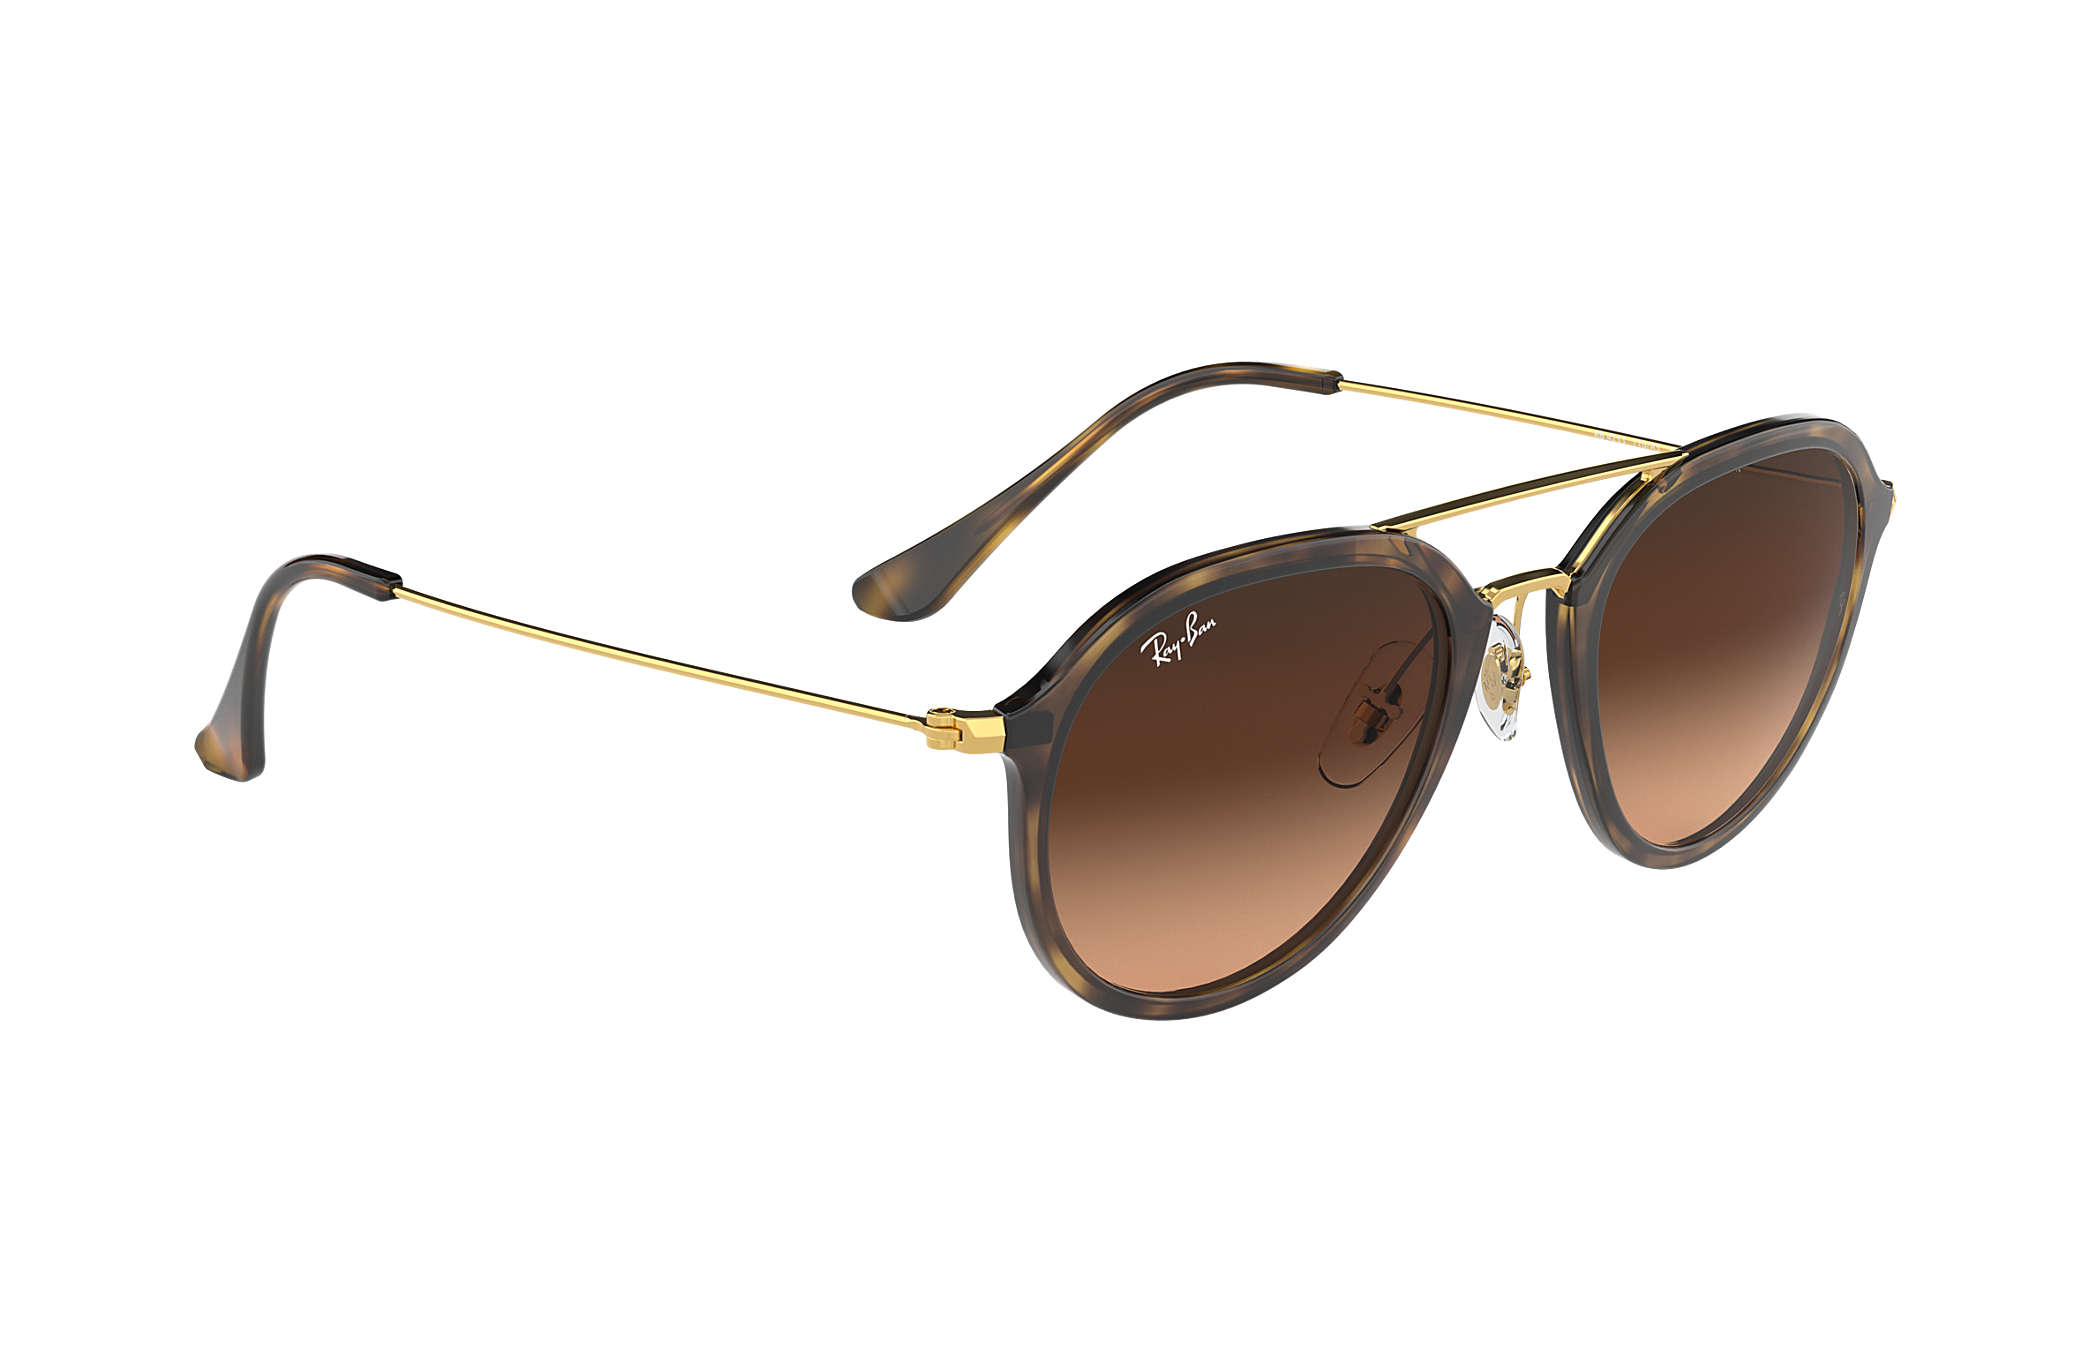 c3d4dbb80b408 Ray-Ban RB4253 Tortoise - Propionate - Pink Brown Lenses ...